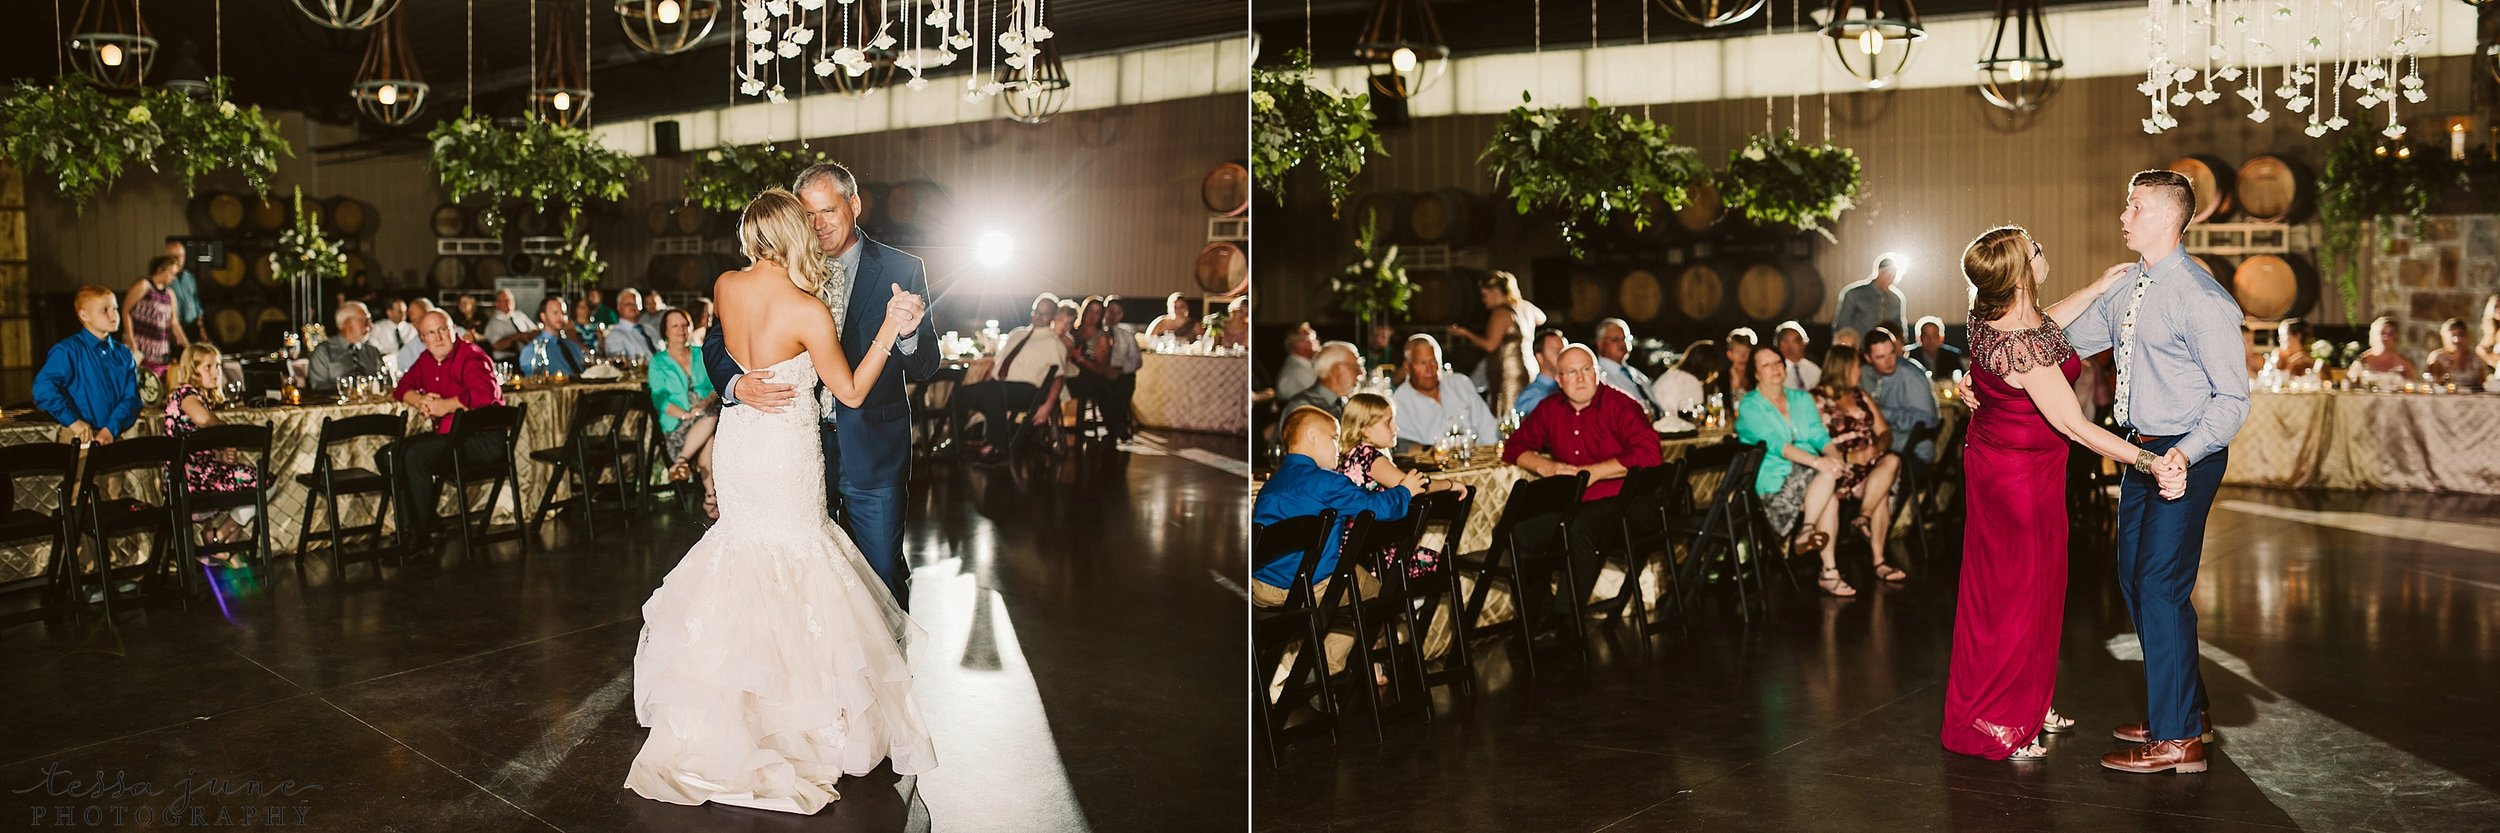 carlos-creek-winery-wedding-alexandria-minnesota-glam-elegant-floral-139.jpg